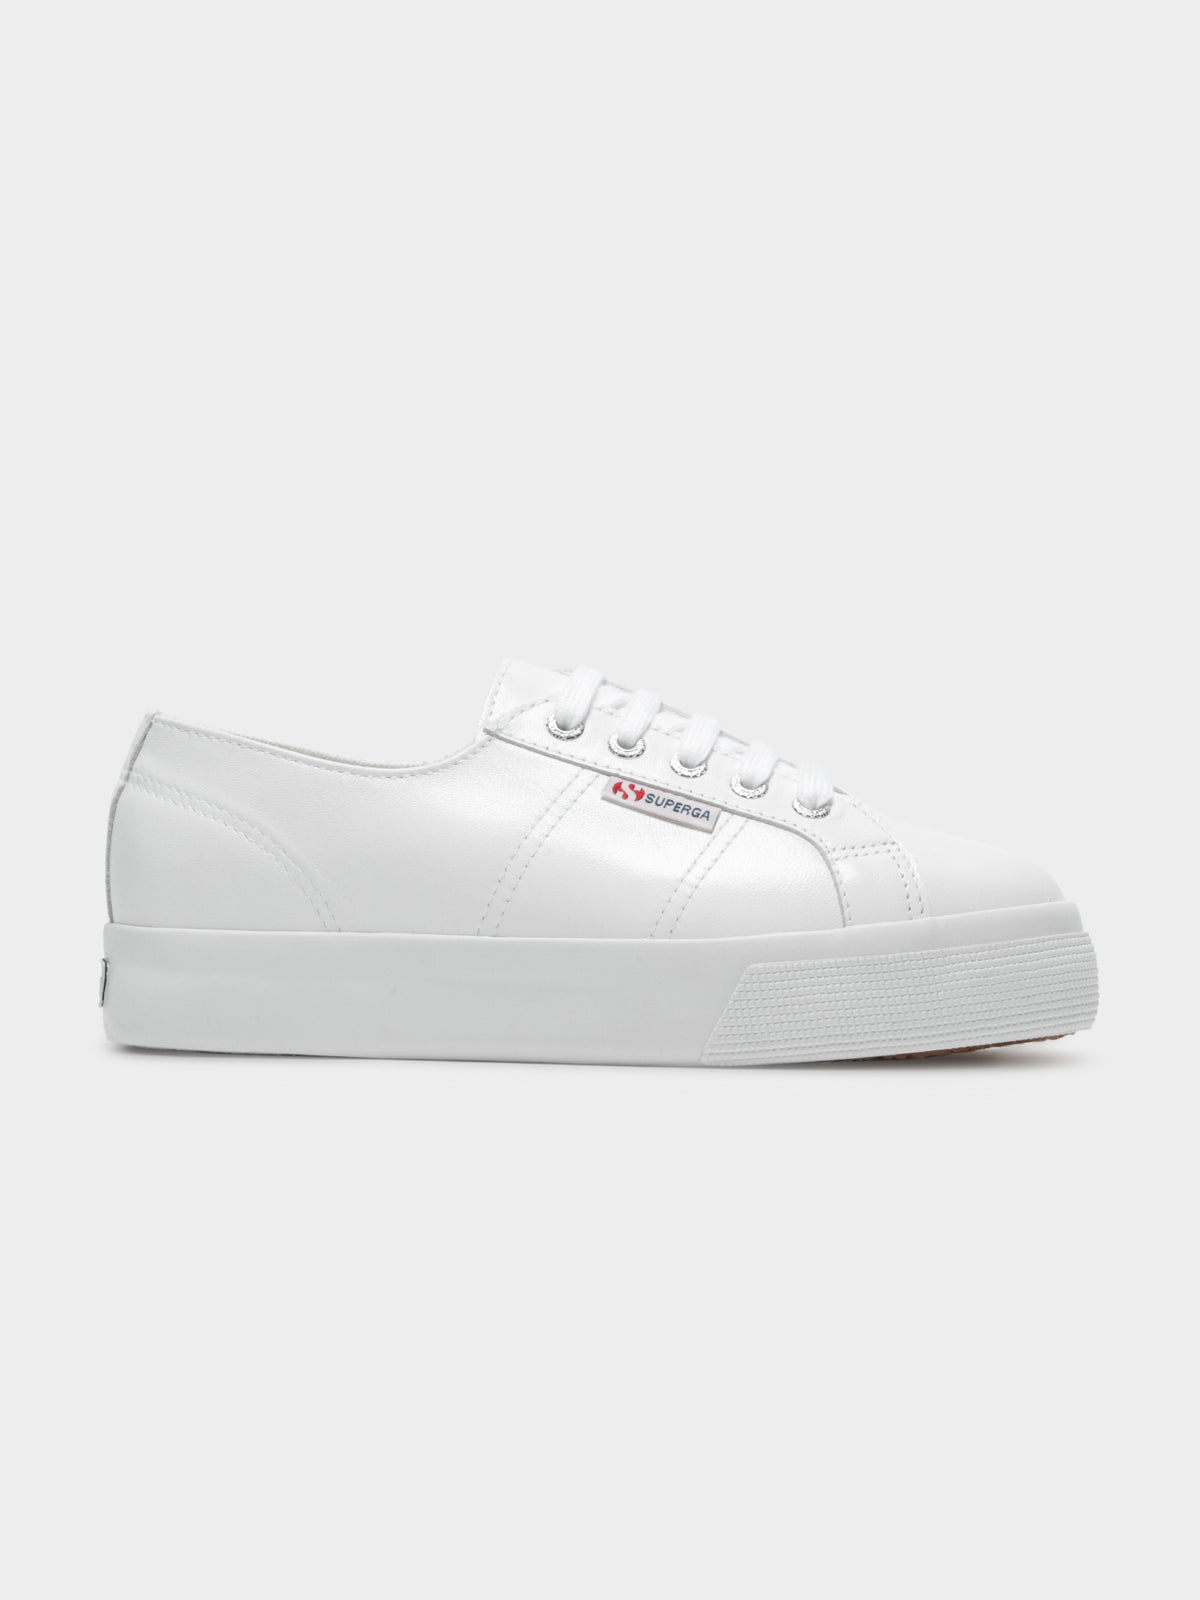 2730 Naplngcotu Sneakers in White